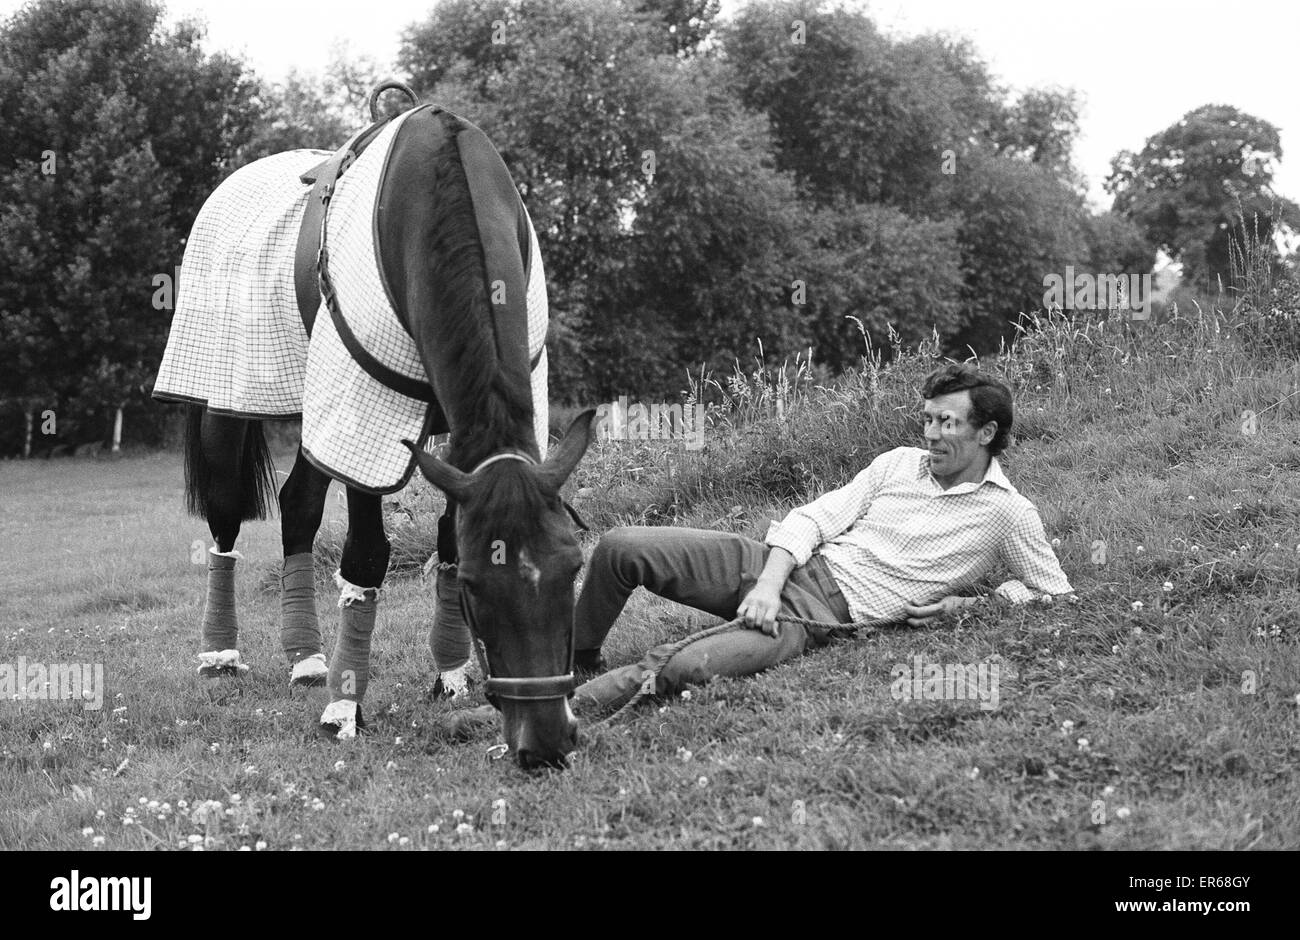 Paddy McMahon with Penwood Forge Mill at Penwood Stables, 31st July 1973. Paddy McMahon & Penwood Forge Mill - Stock Image